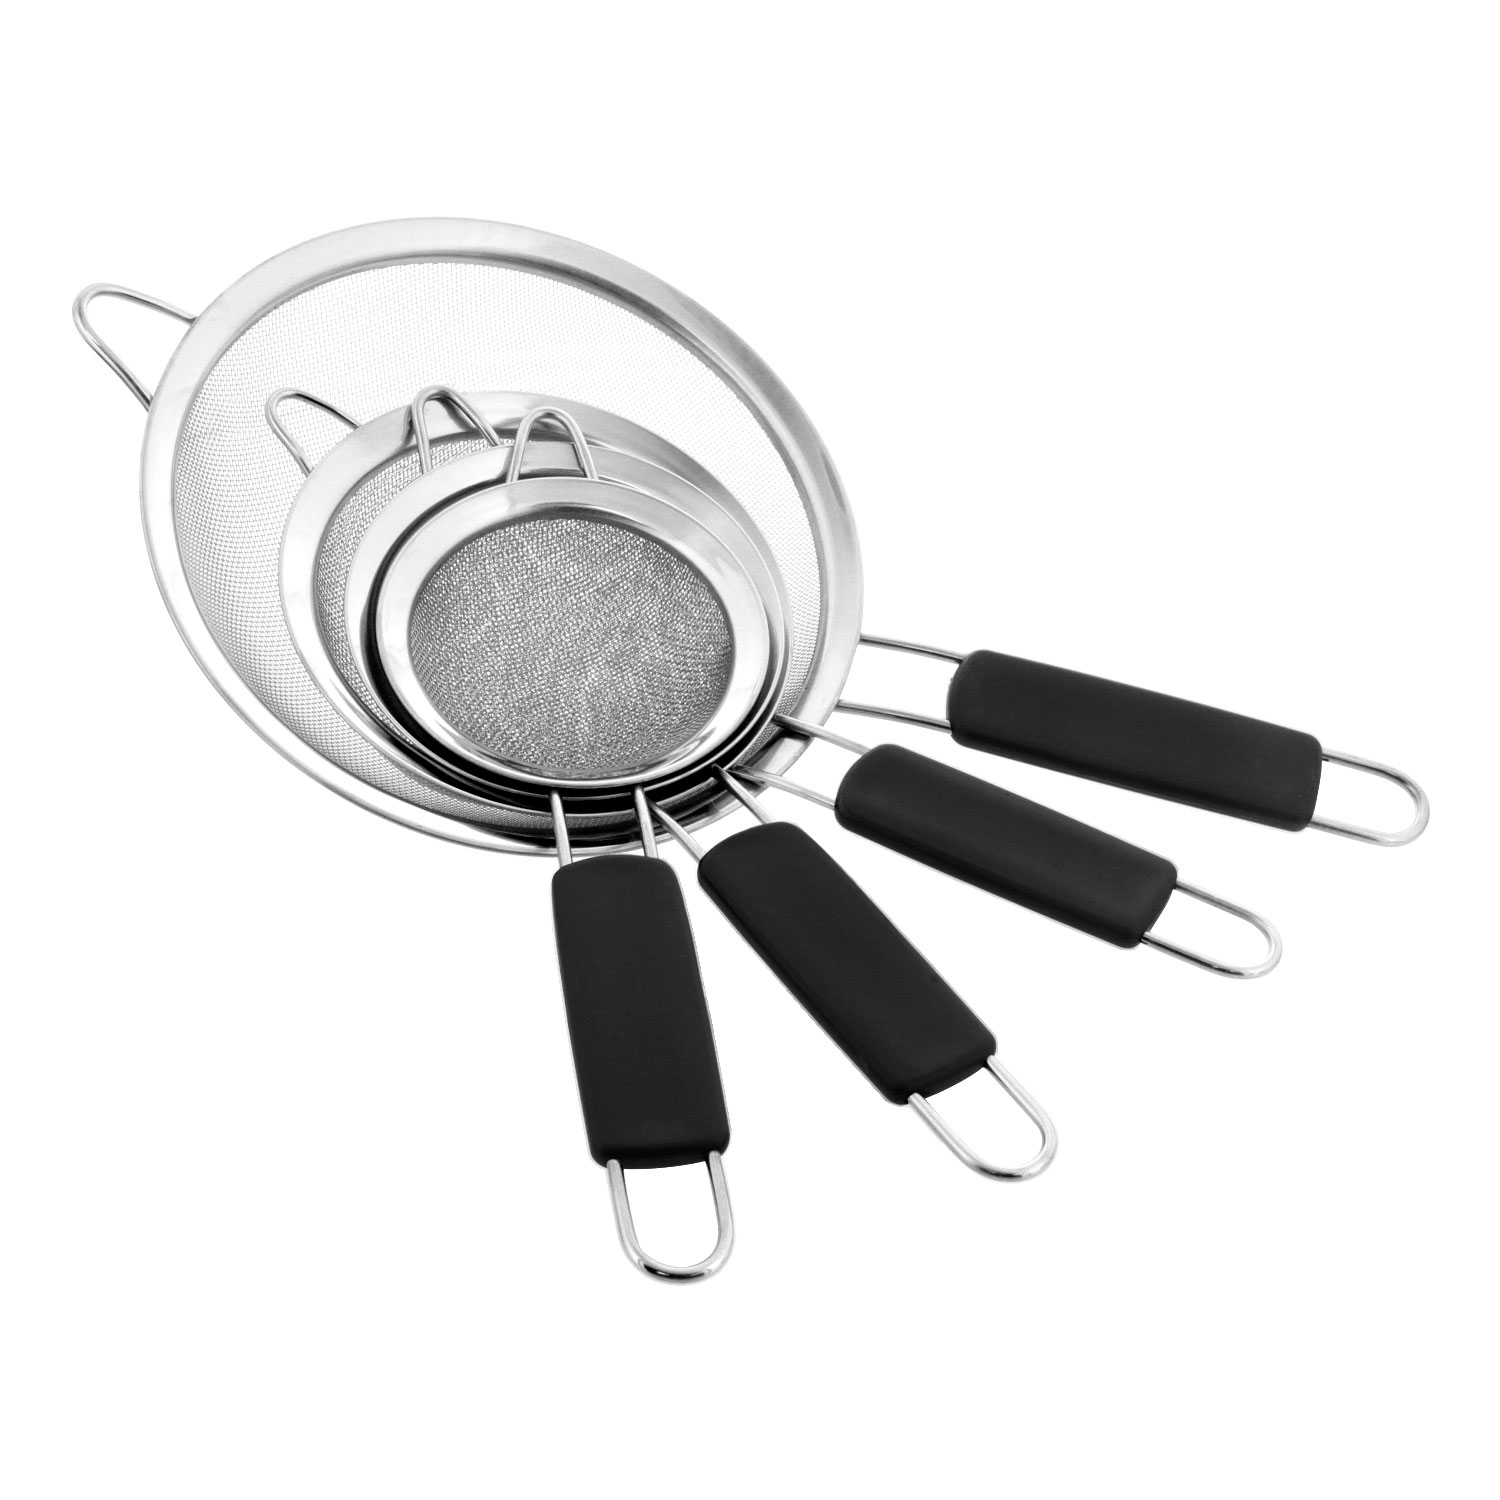 U.S. Kitchen Supply - Set of 4 Fine Mesh Stainless Steel Strainers with Comfortable Non Slip Handles